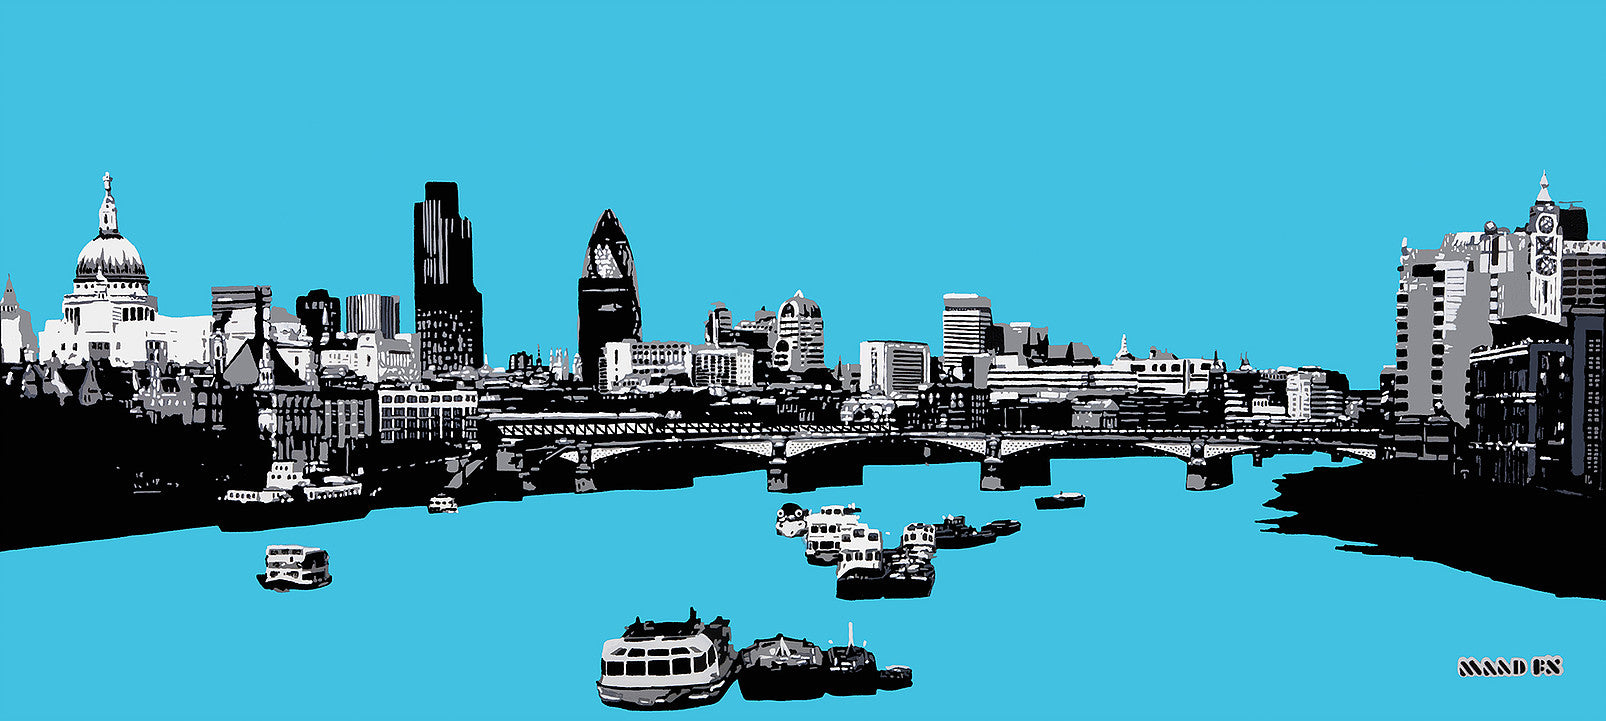 Electric London - Across the Thames (#EL_09)